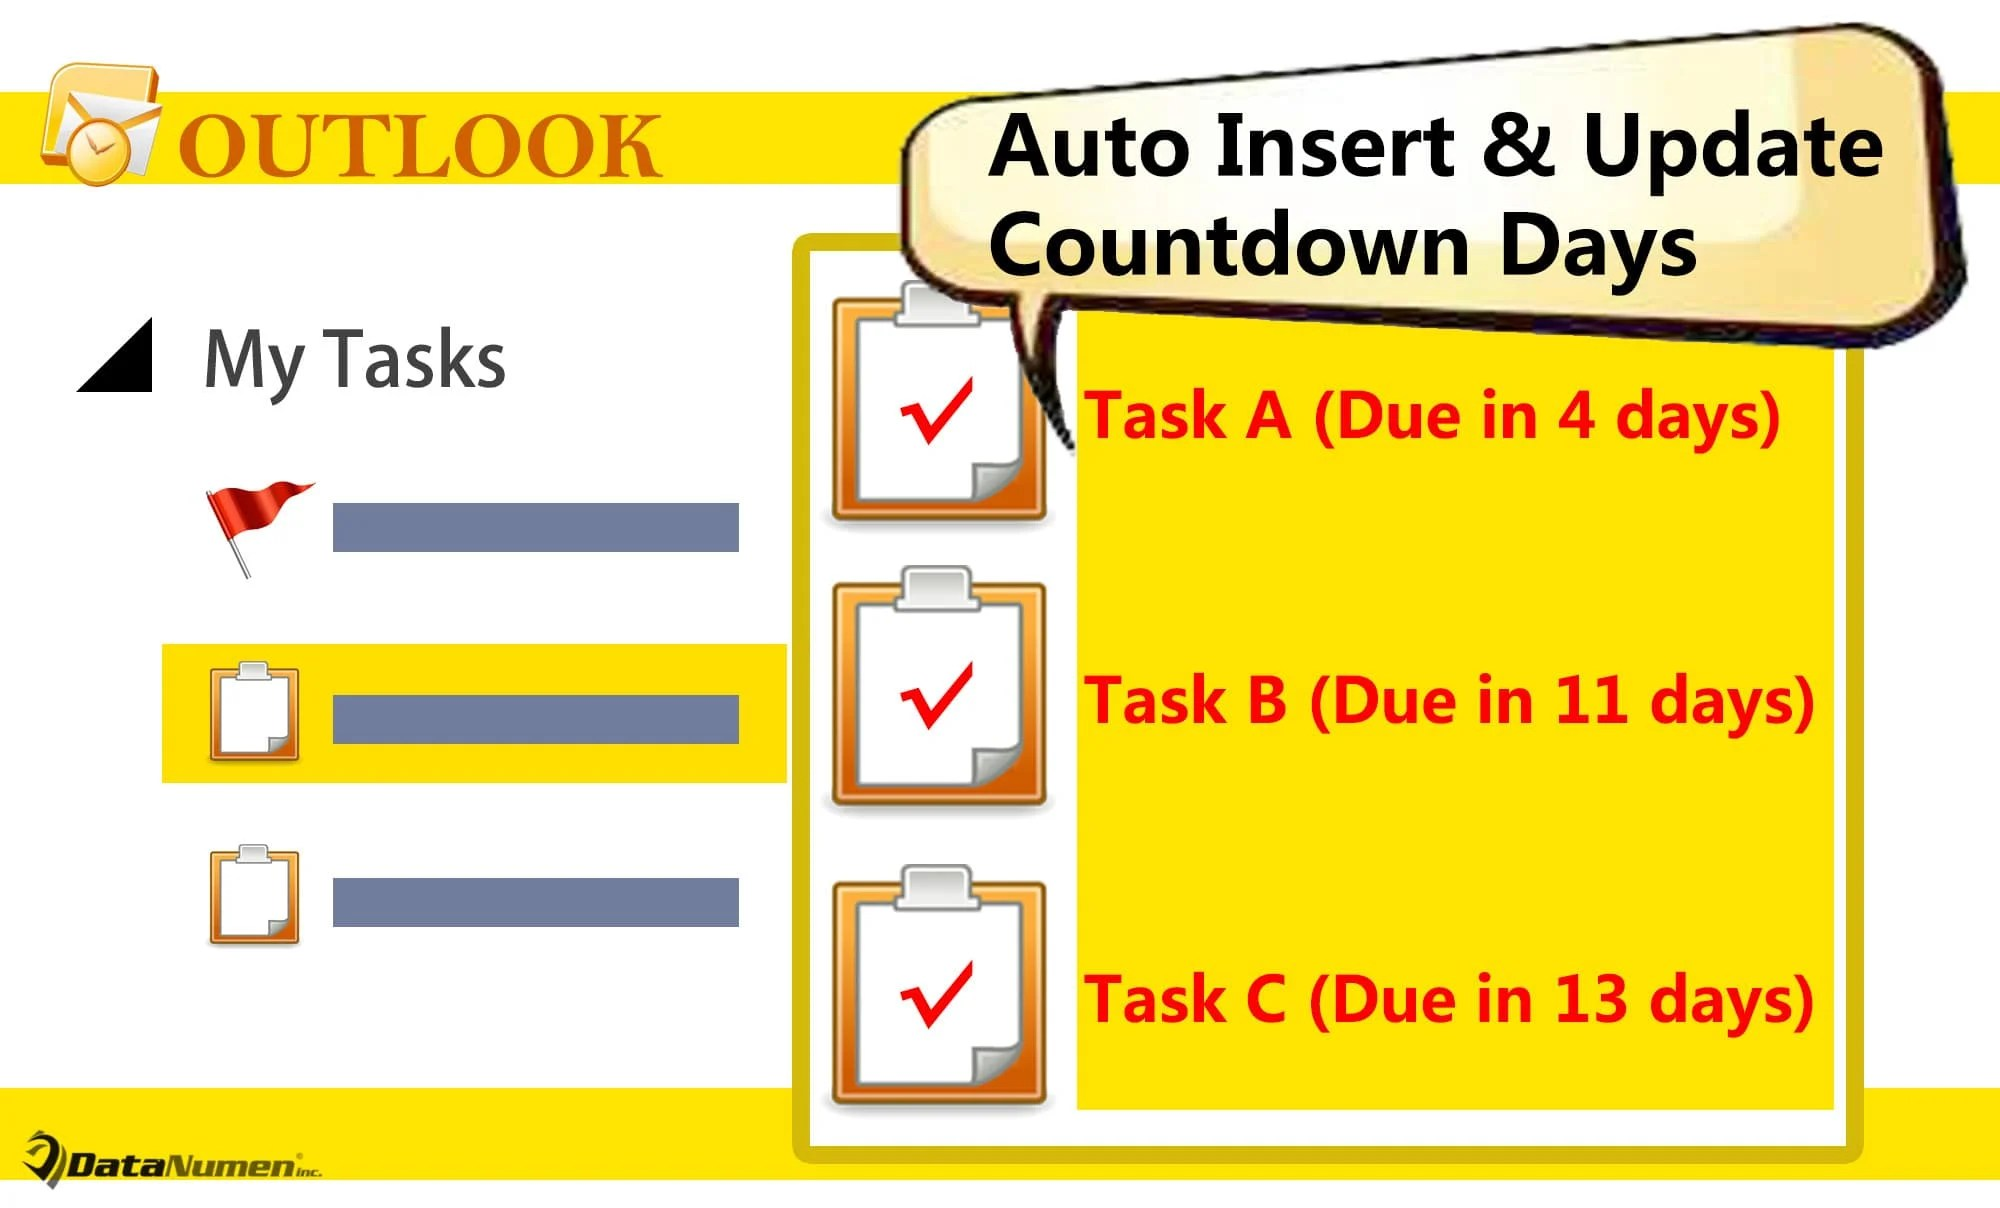 Auto Insert & Update Countdown Days in Outlook Tasks' Subjects